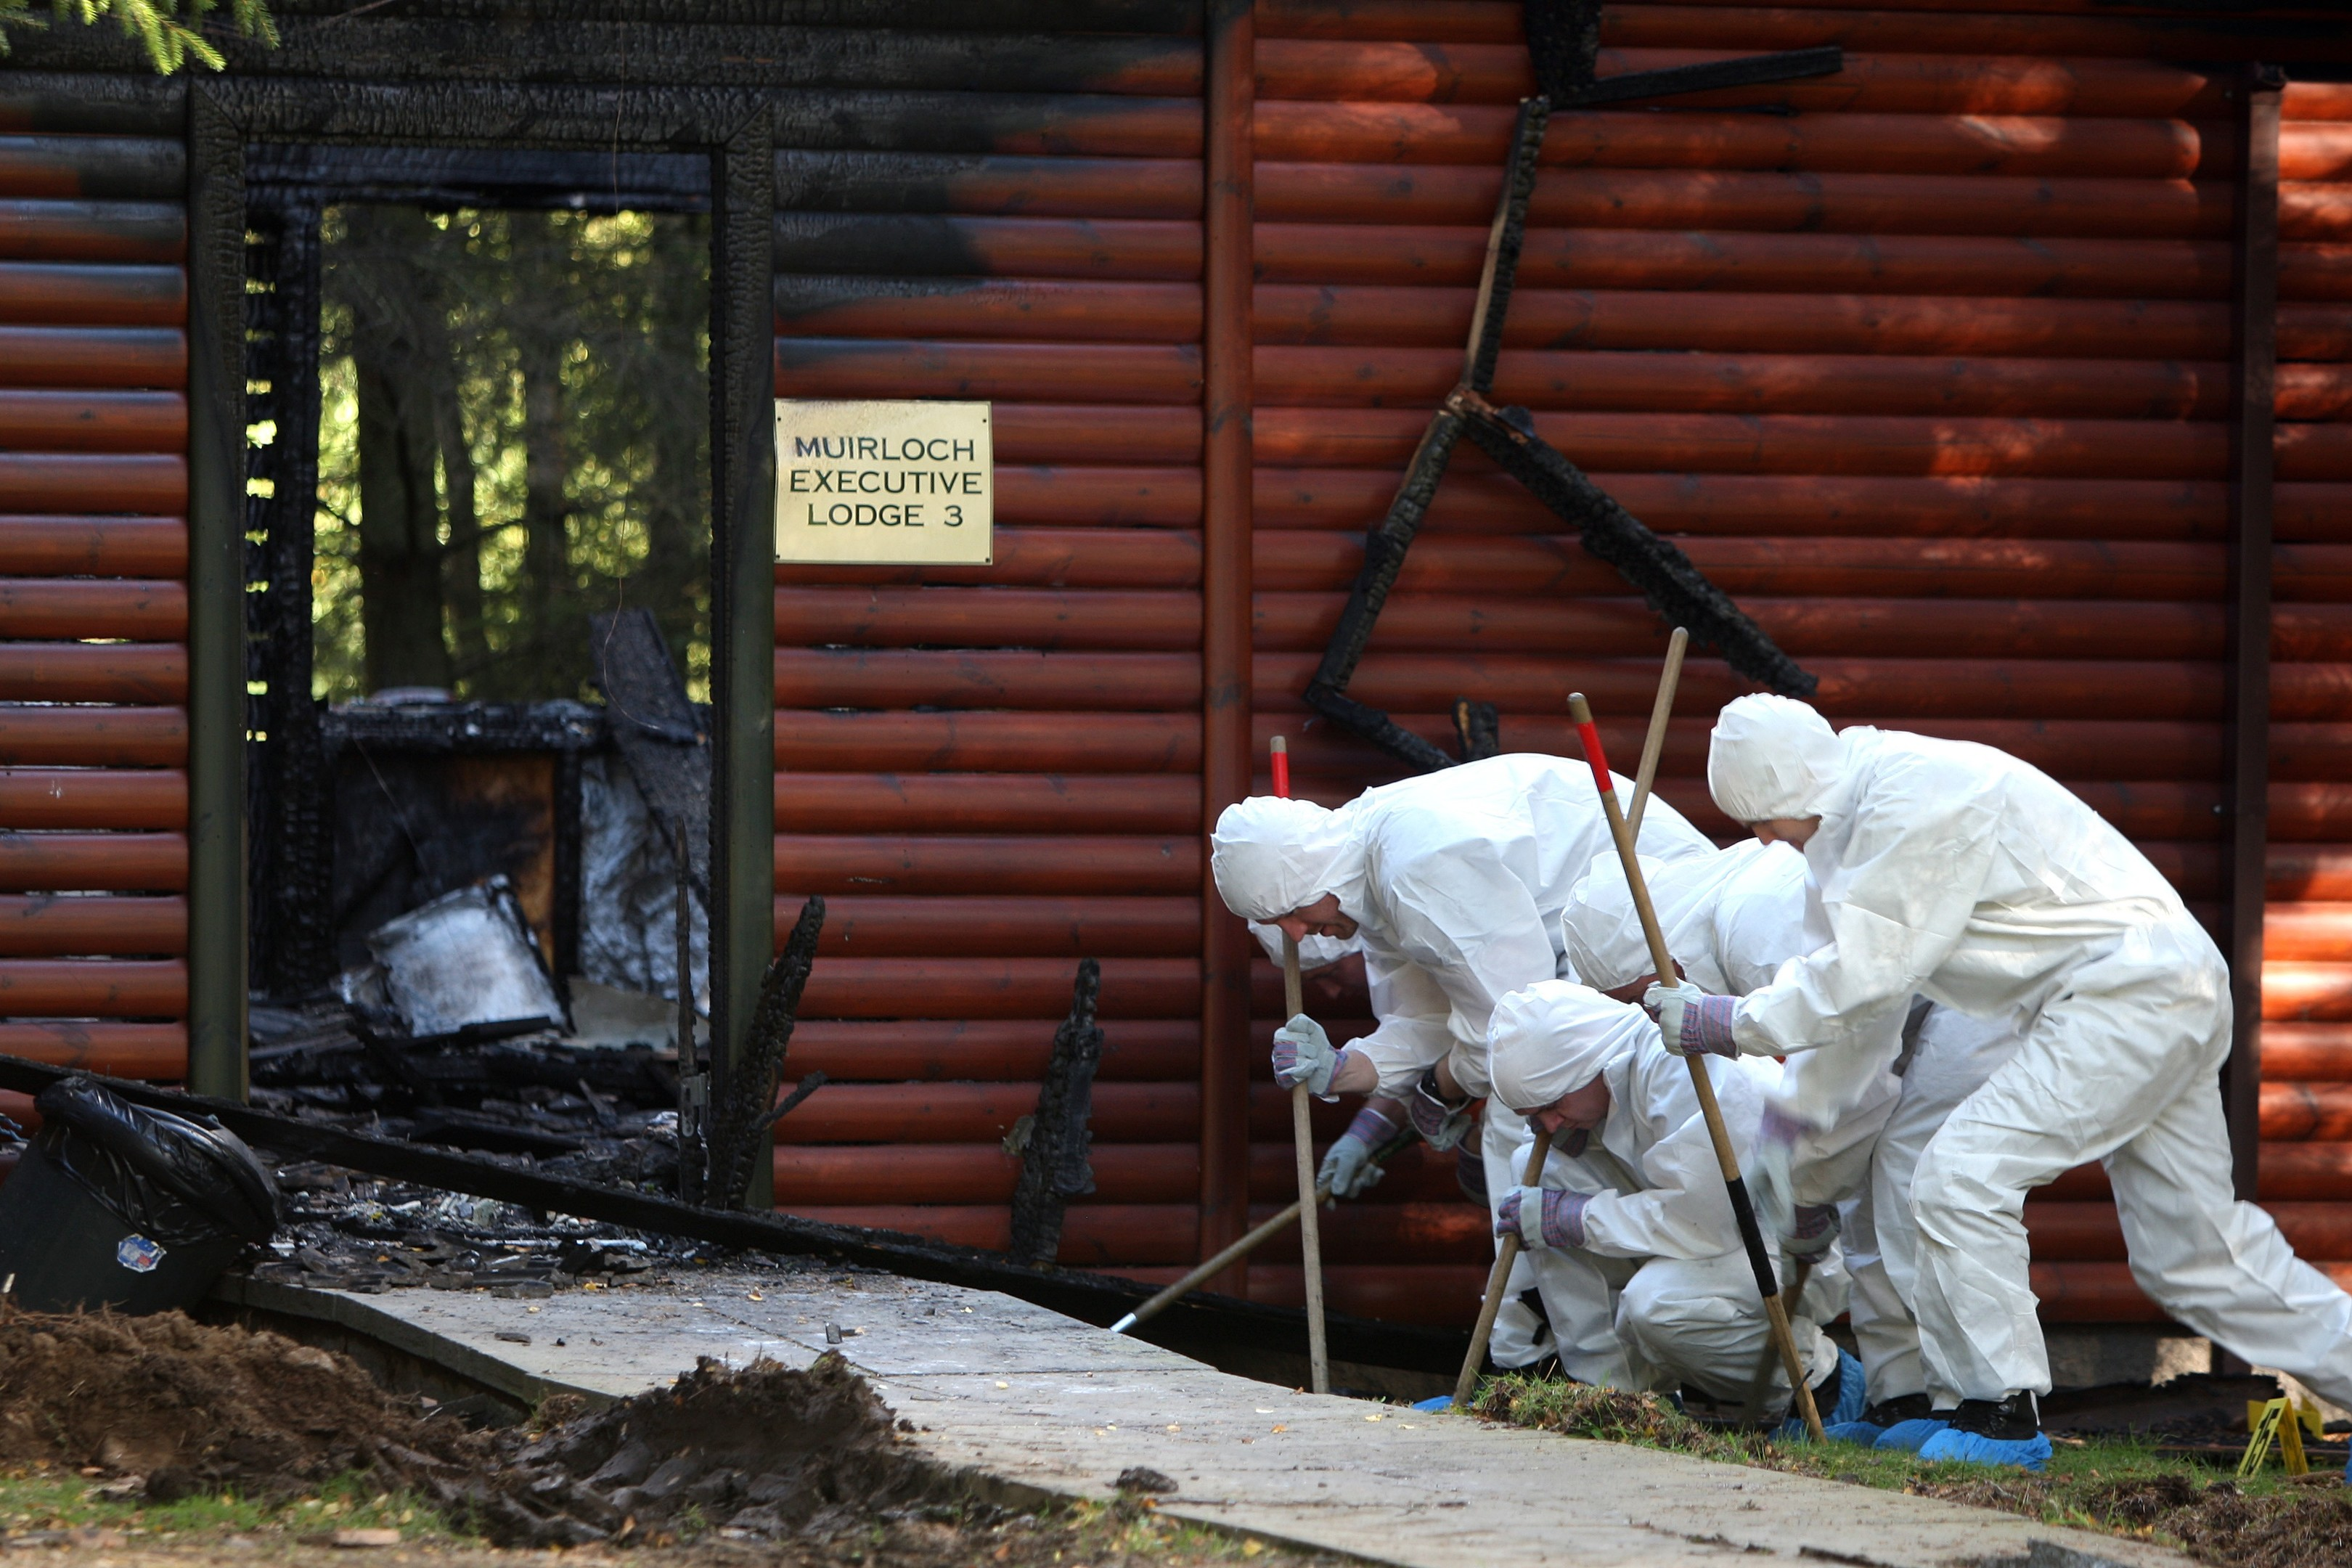 Police carry out a forensic examination of the lodge in 2015.